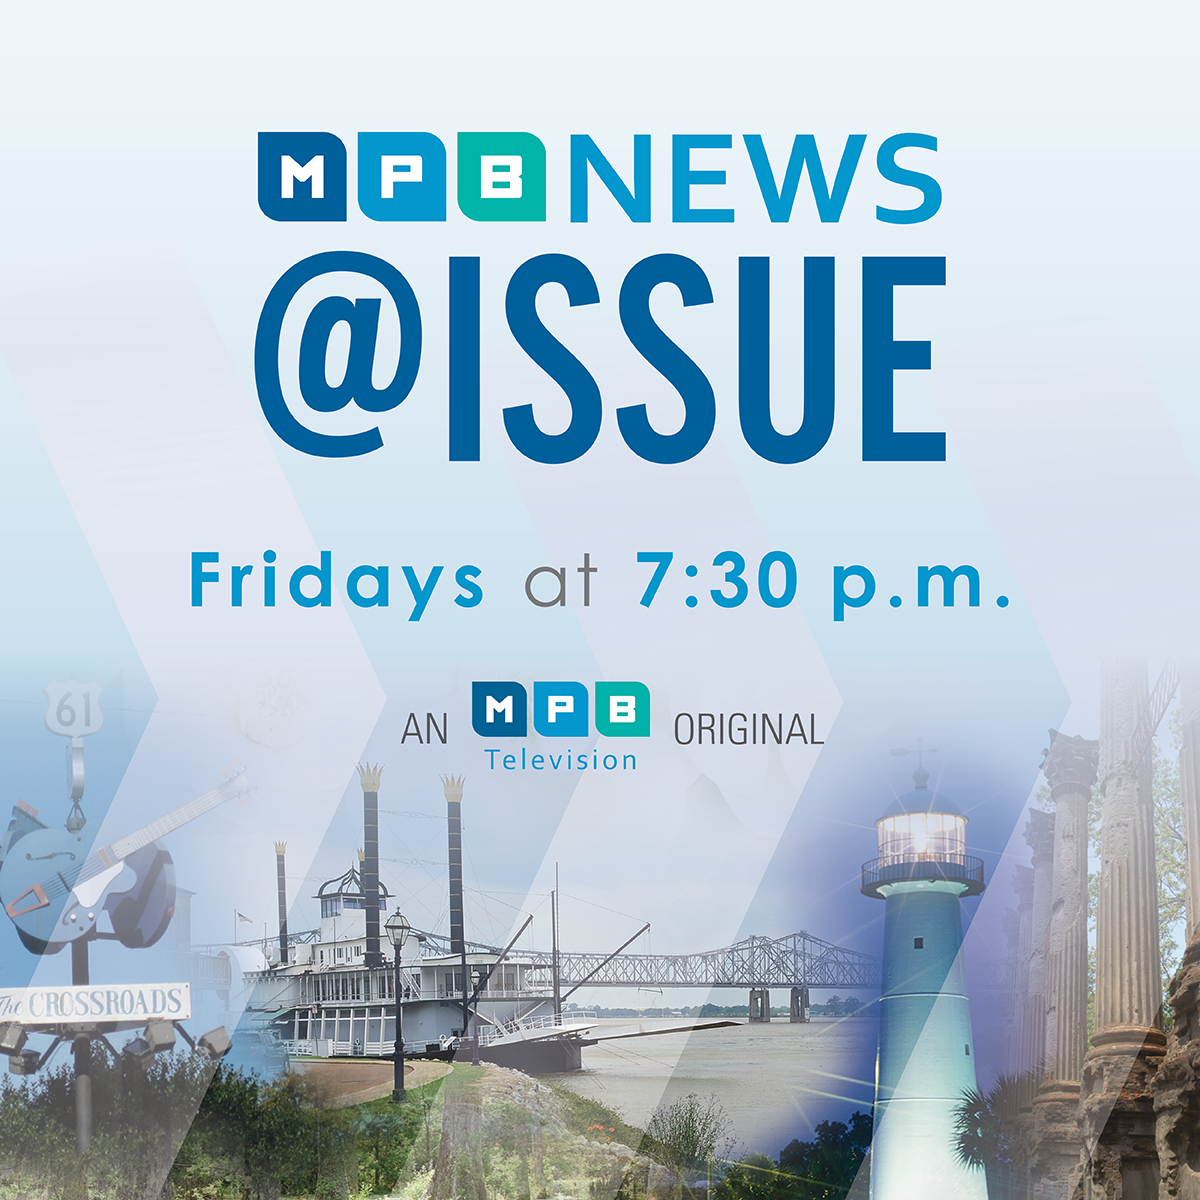 Watch @ISSUE Fridays at 7:30 PM on MPB TV.